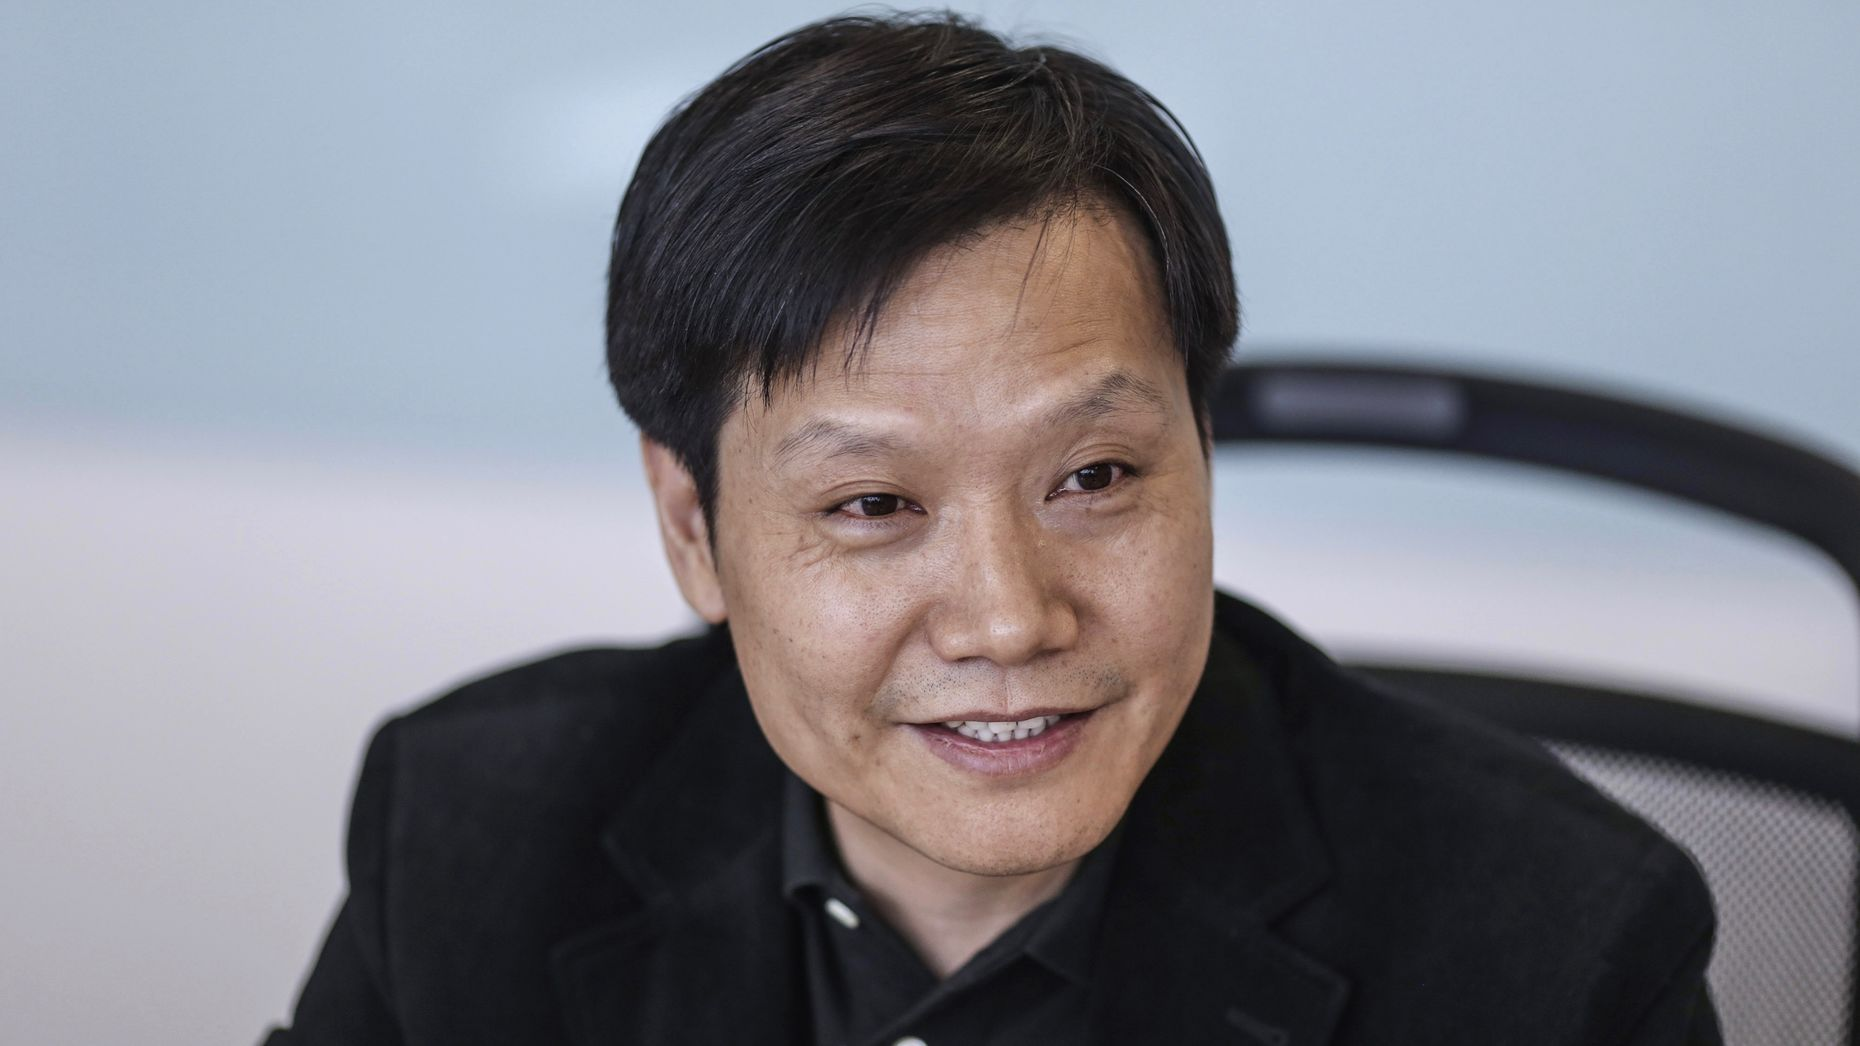 Xiaomi chairman and CEO Lei Jun. Photo by Bloomberg